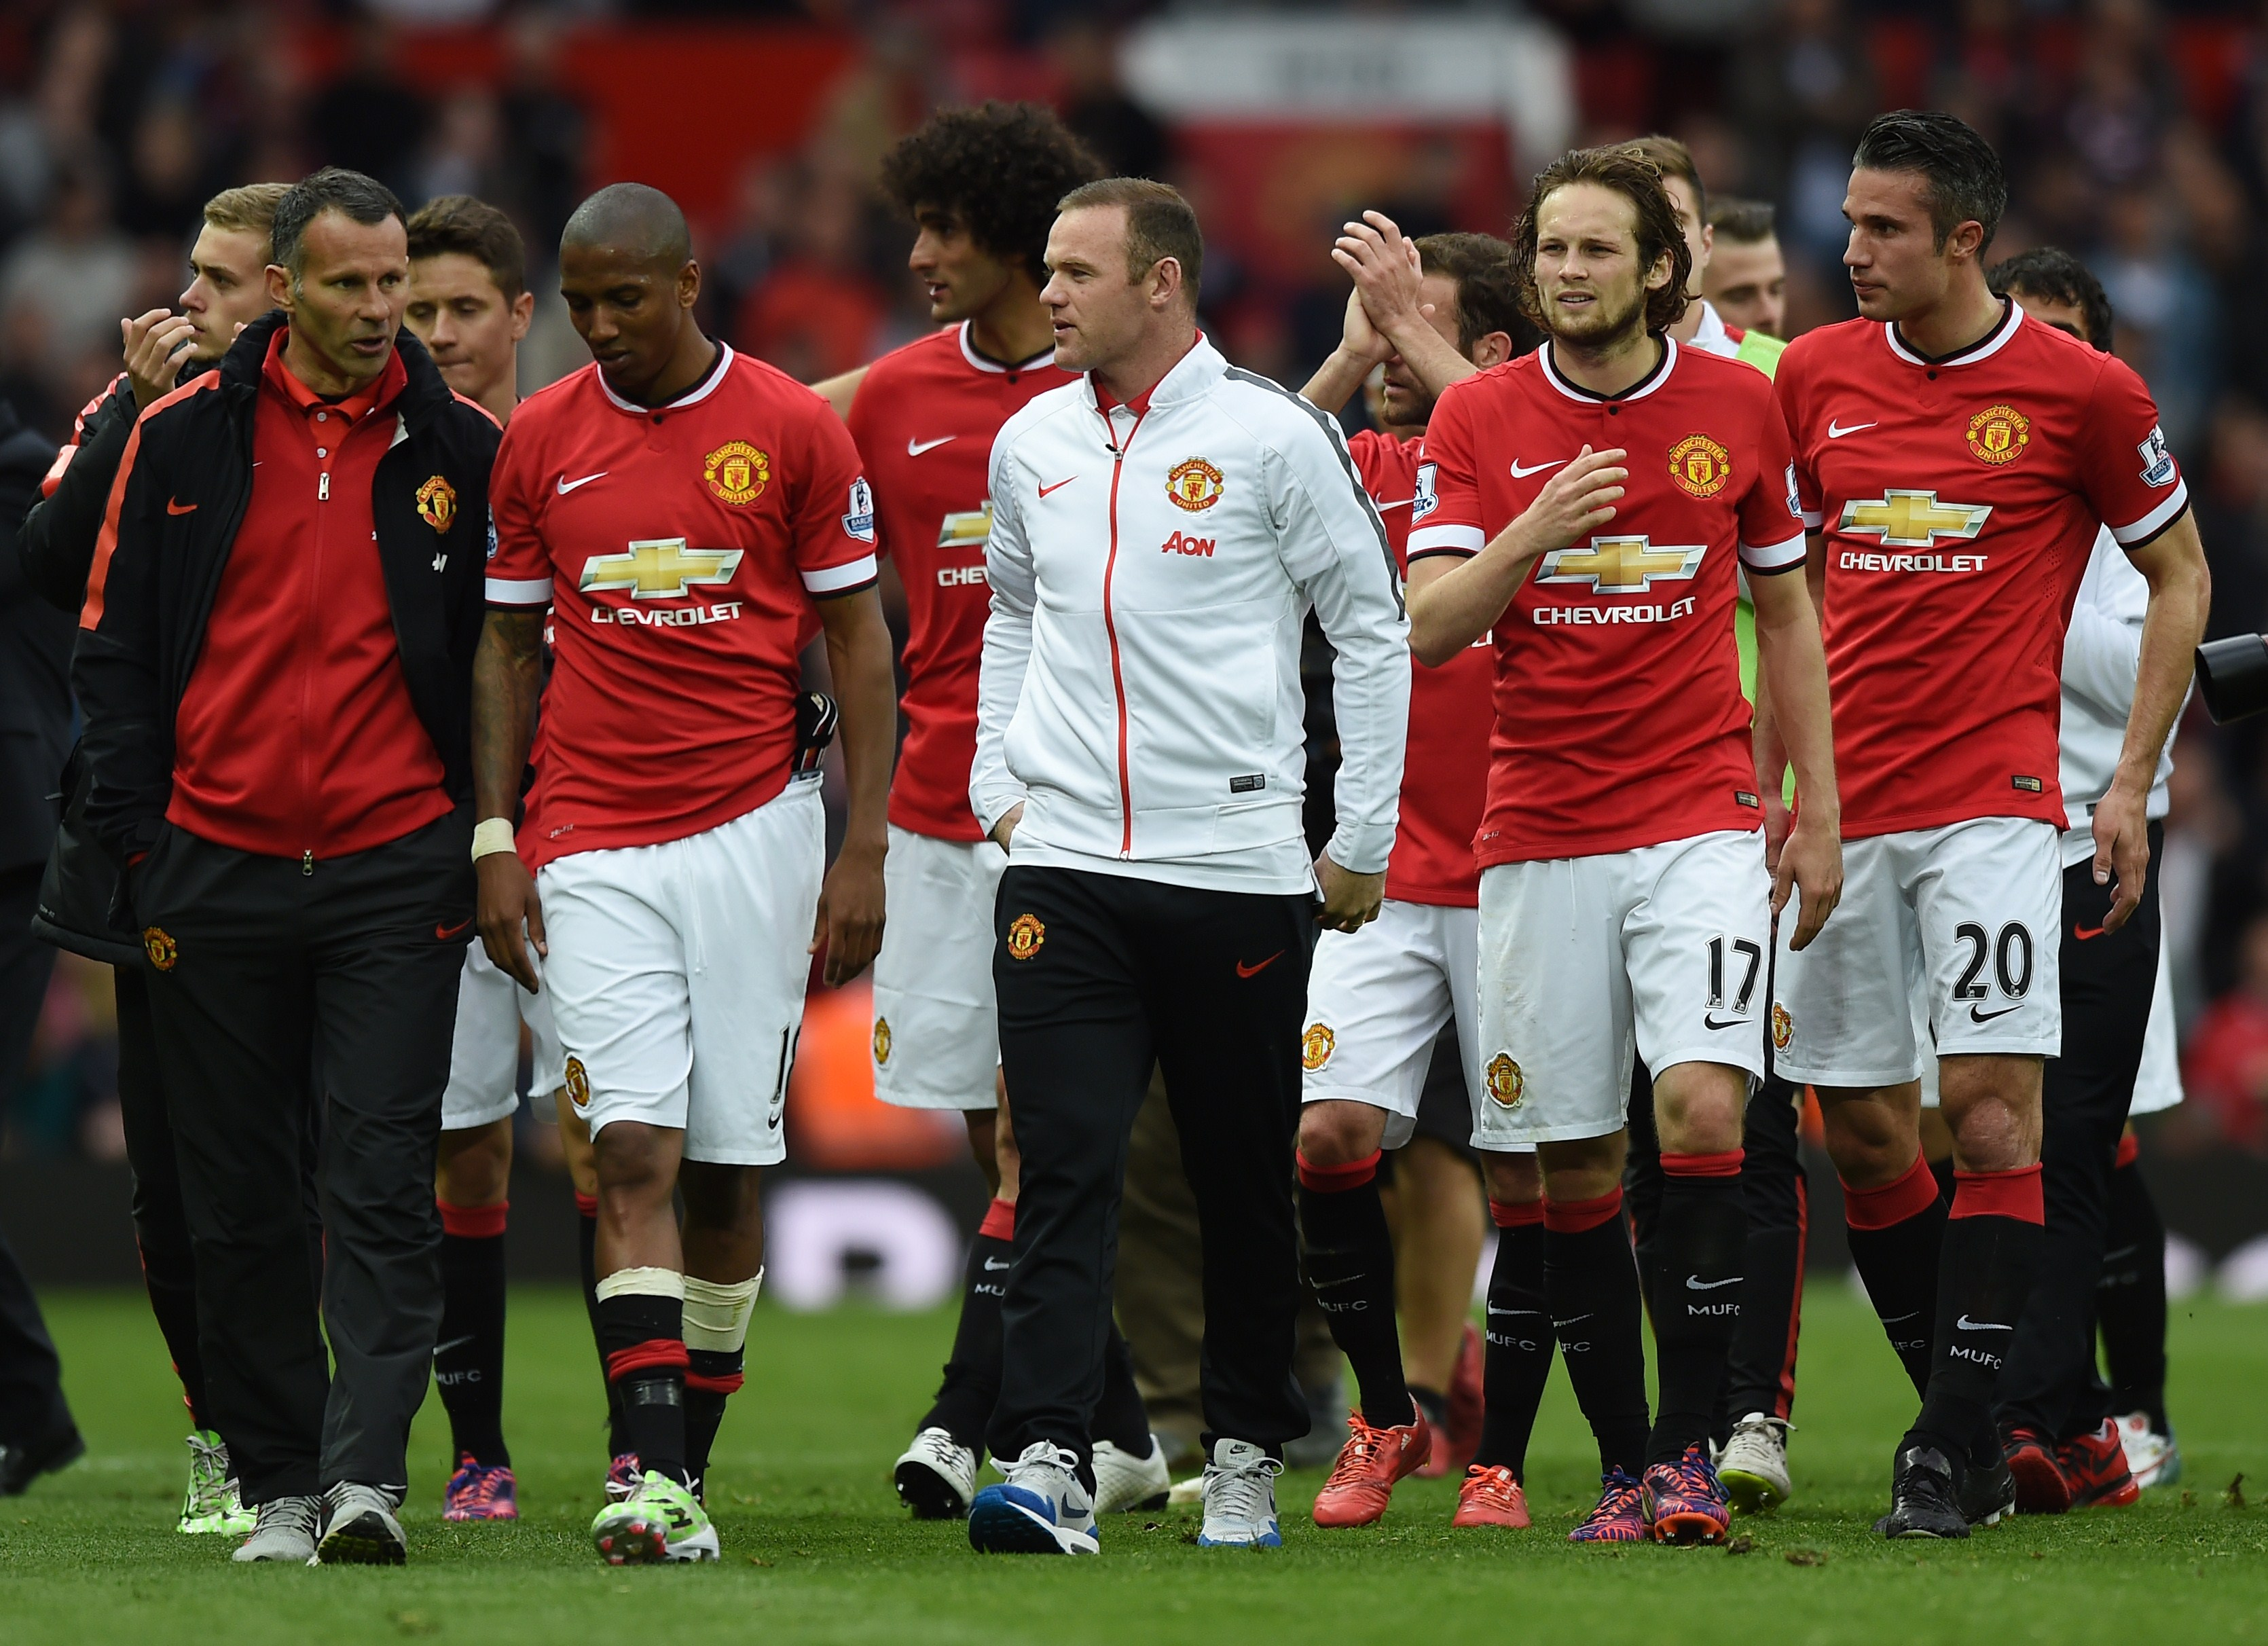 "Manchester United's English striker Wayne Rooney (C) walks on the pitch with teammates after the English Premier League football match between Manchester United and Arsenal at Old Trafford in Manchester, northwest England, on May 17, 2015. AFP PHOTO / PAUL ELLIS RESTRICTED TO EDITORIAL USE. No use with unauthorized audio, video, data, fixture lists, club/league logos or ""live"" services. Online in-match use limited to 45 images, no video emulation. No use in betting, games or single club/league/player publications"